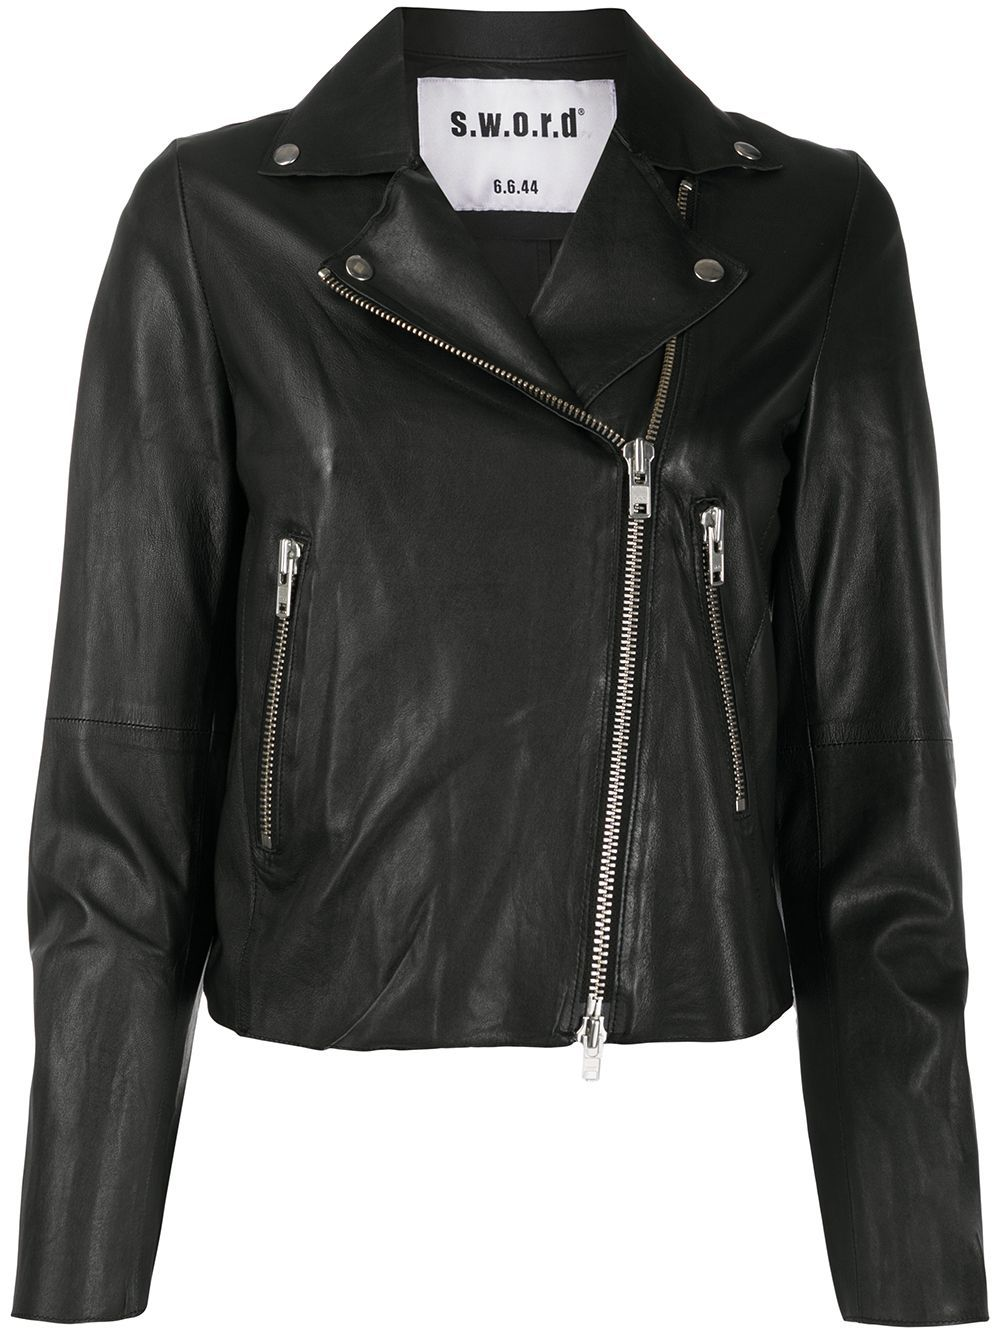 Black lamb skin cropped fitted biker jacket from S.W.O.R.D 6.6.44 featuring an off-centre front zip fastening, long sleeves, a slim fit, a cropped length and silver-tone hardware.